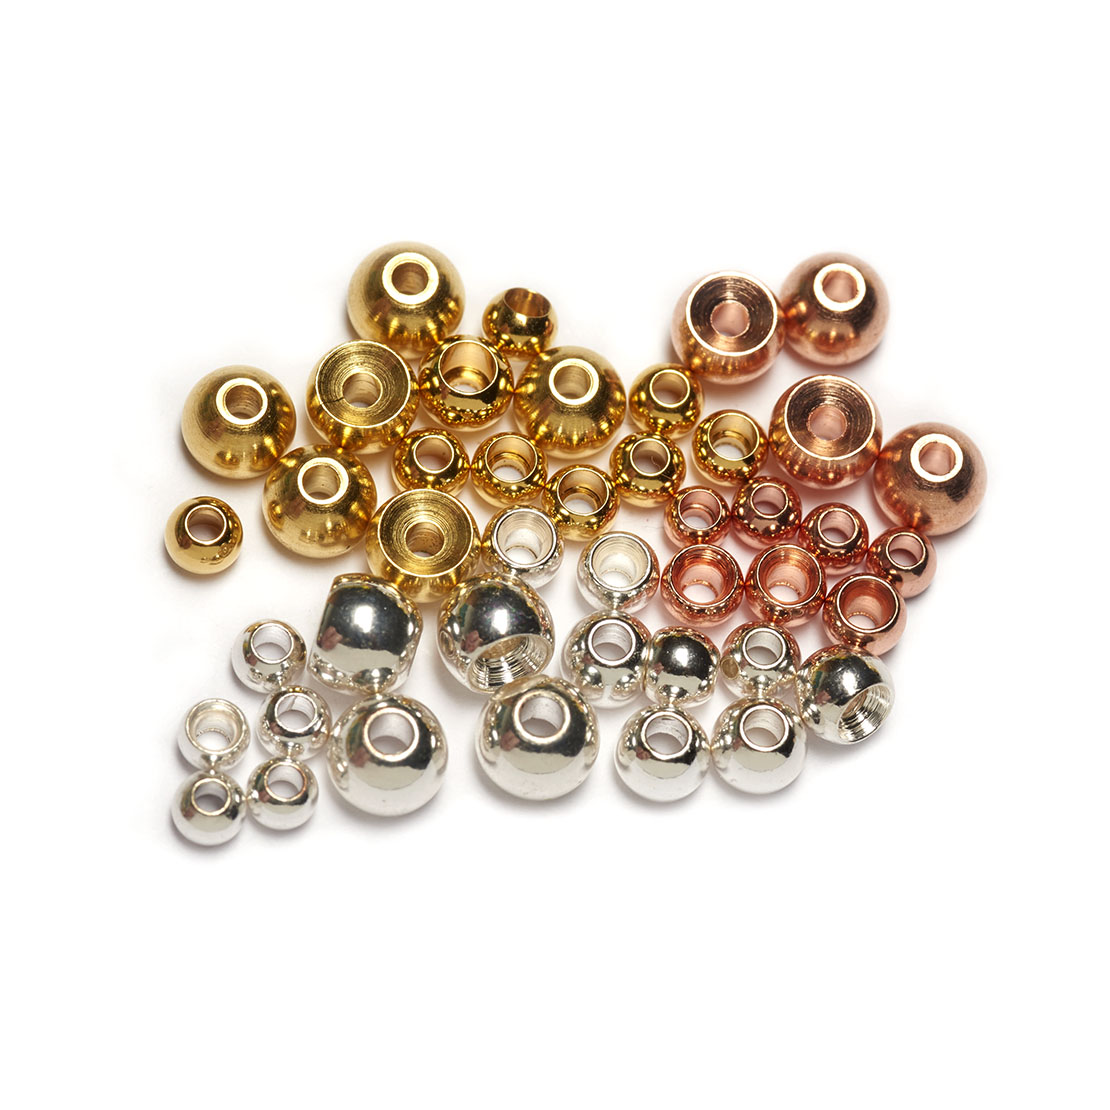 Veniards Brass Beads